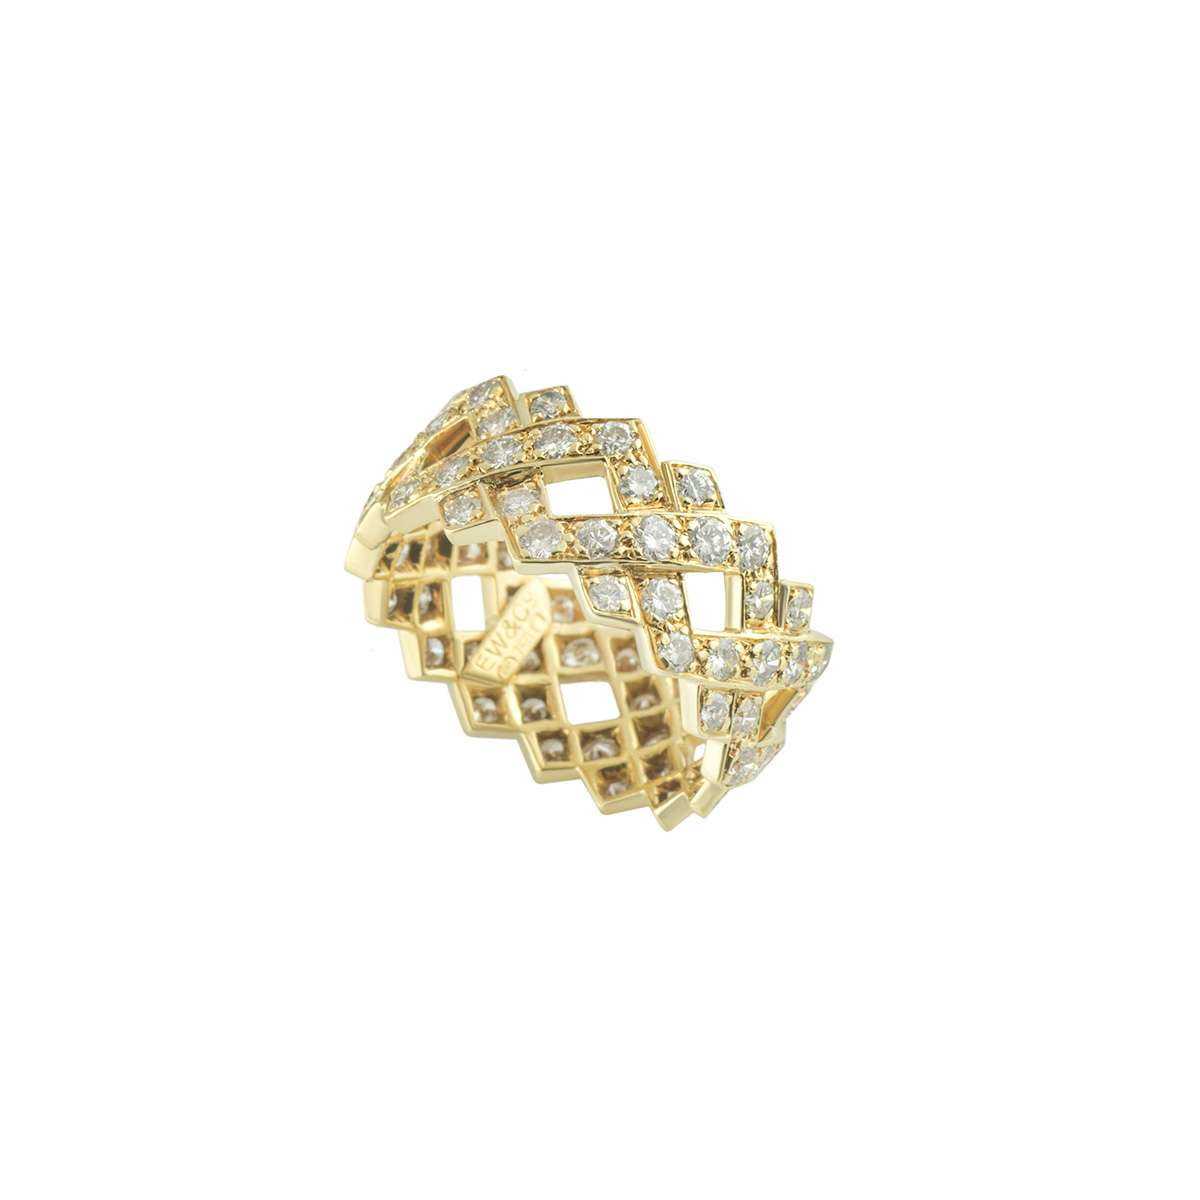 Yellow Gold Diamond Ring 1.28ct G/VS